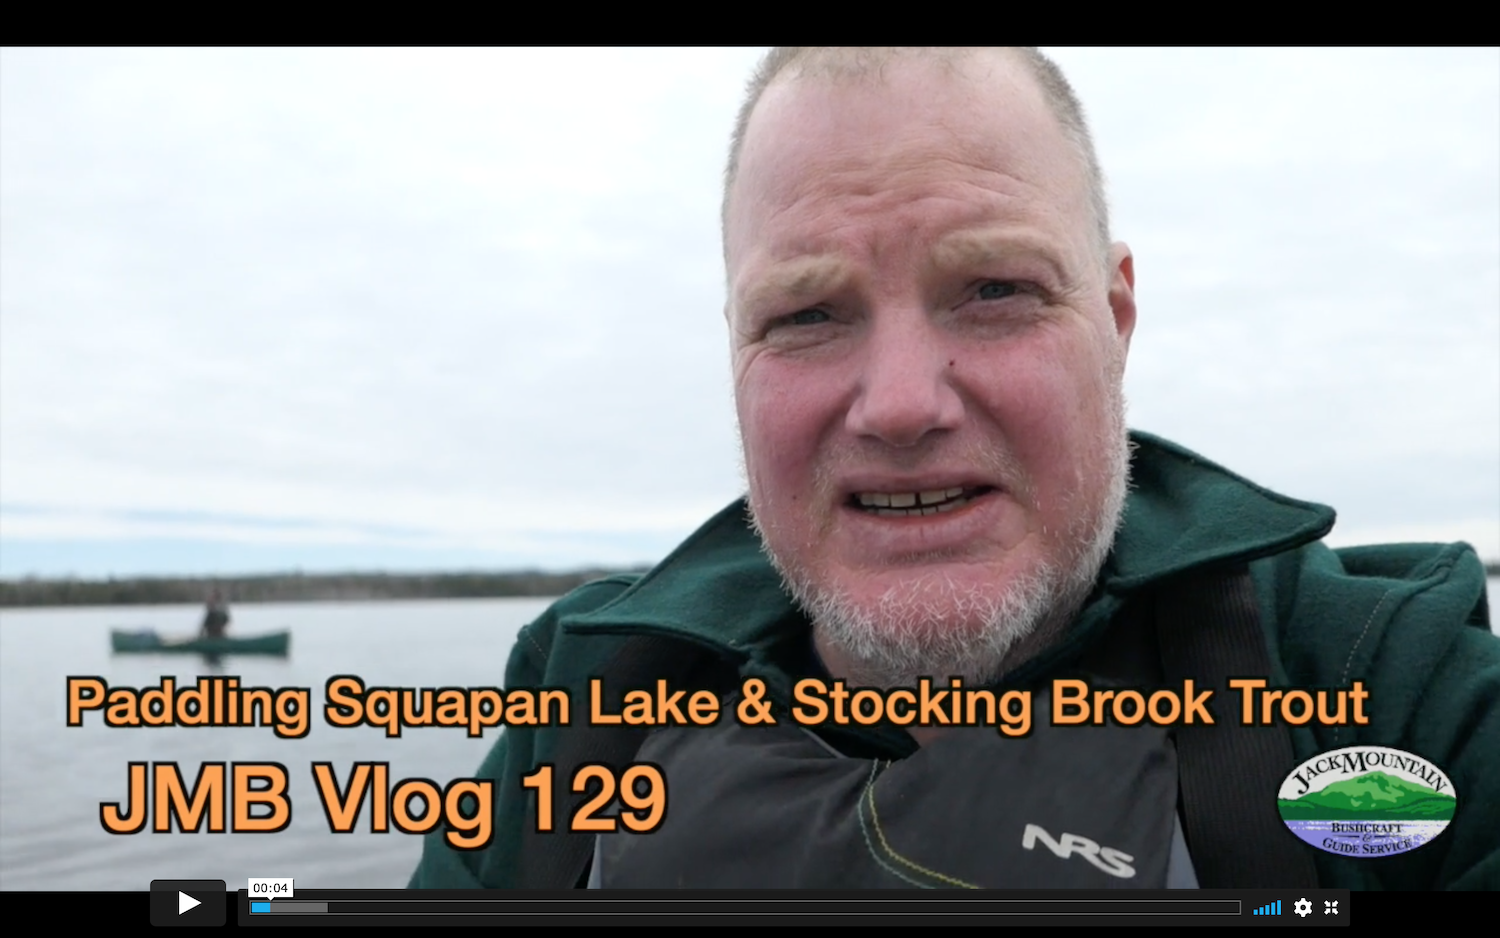 Paddling Squapan Lake & Stocking Trout | JMB Vlog 129